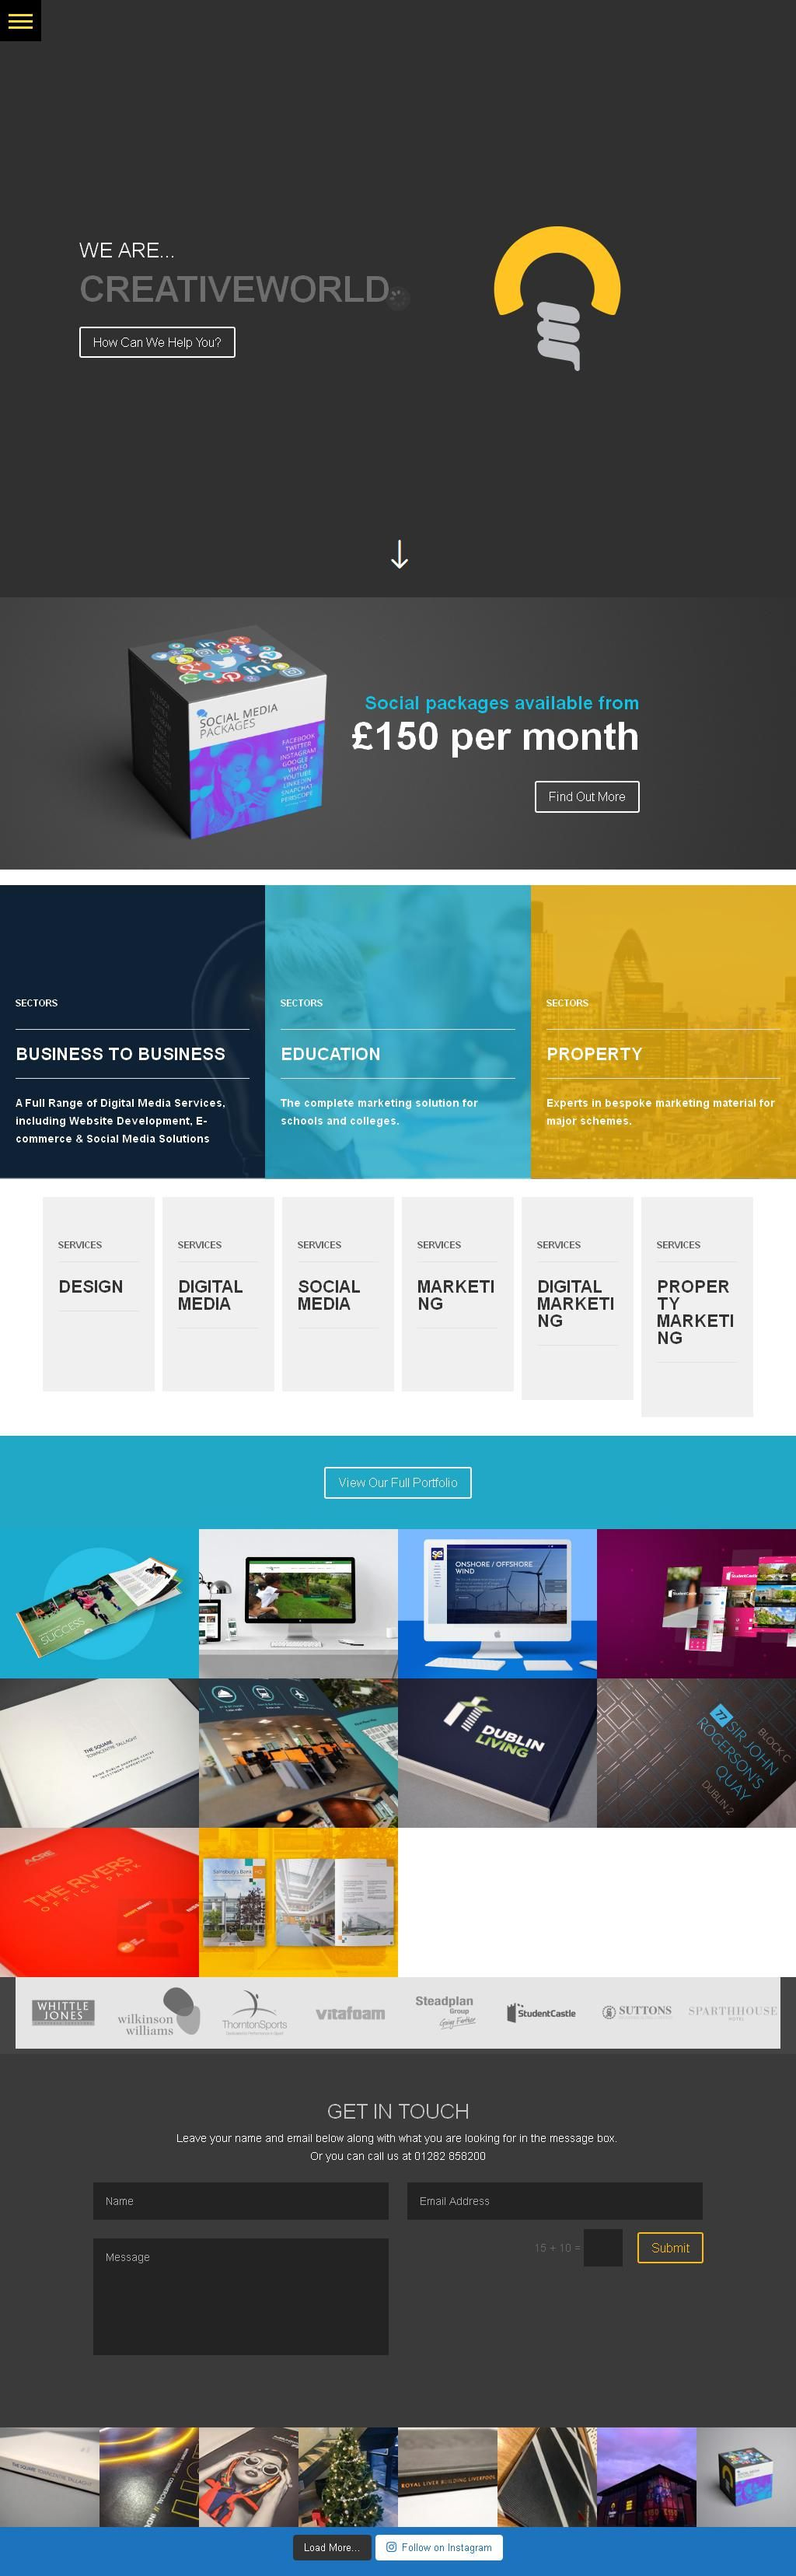 C W Advertising Agency Ltd Advertising Services Crown